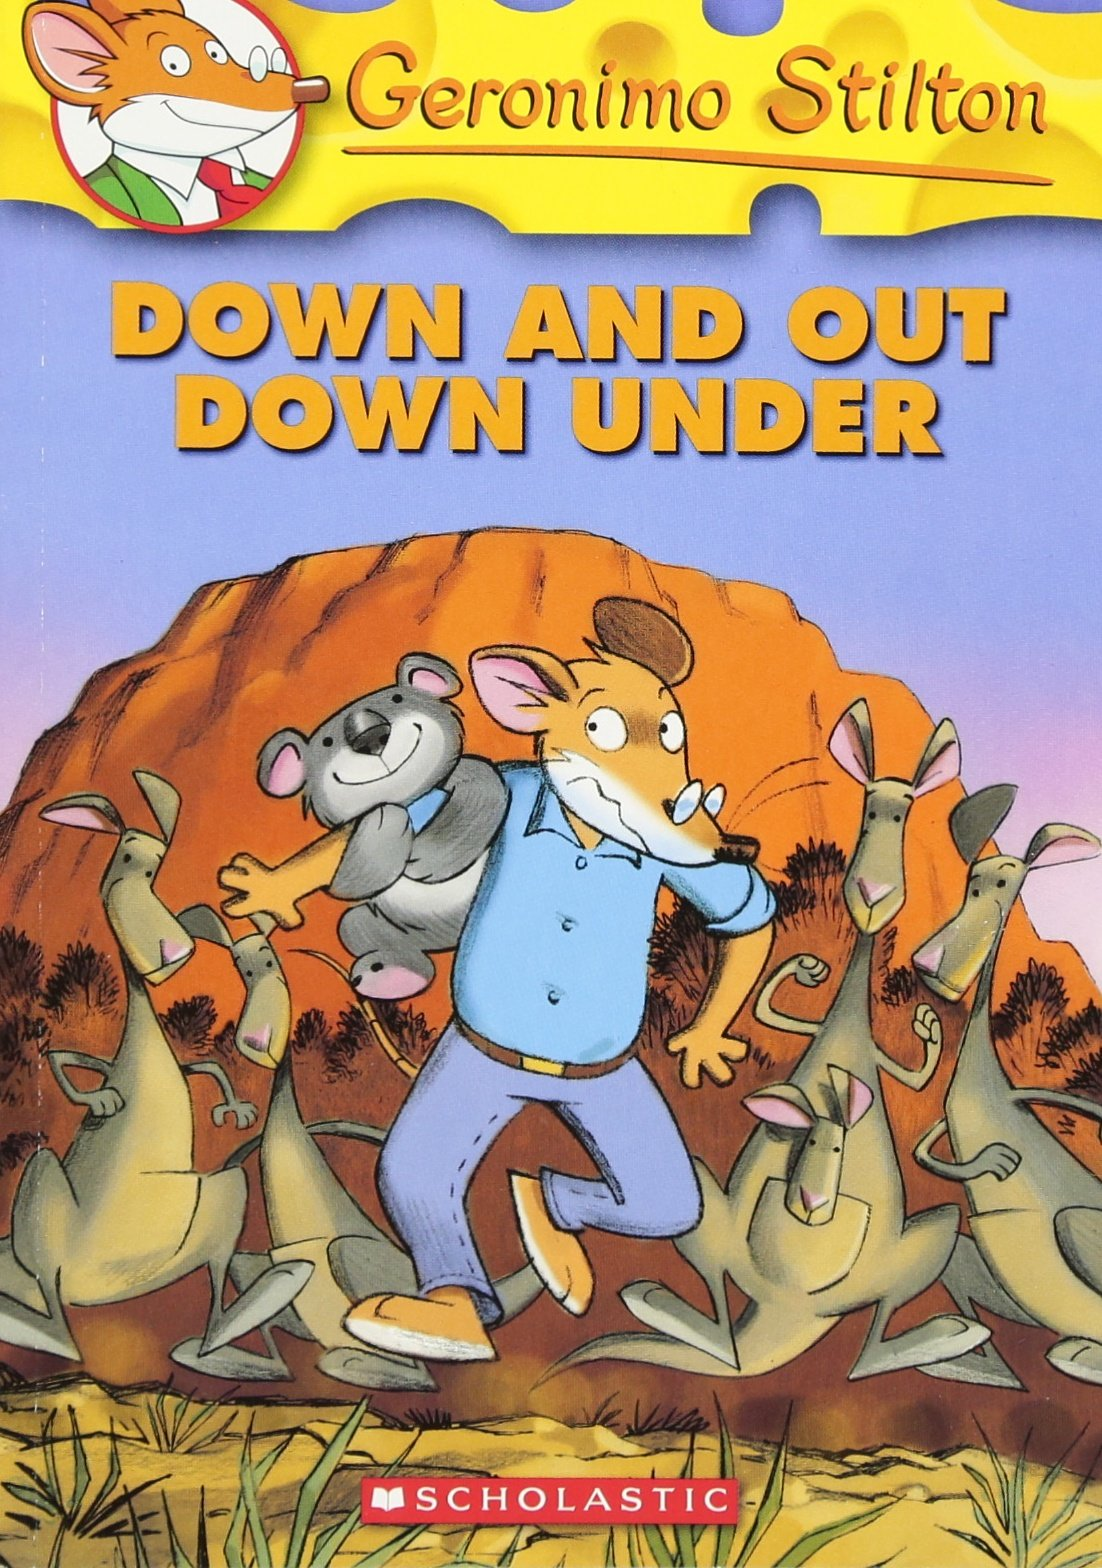 Down and Out Down Under (Geronimo Stilton, No. 29)